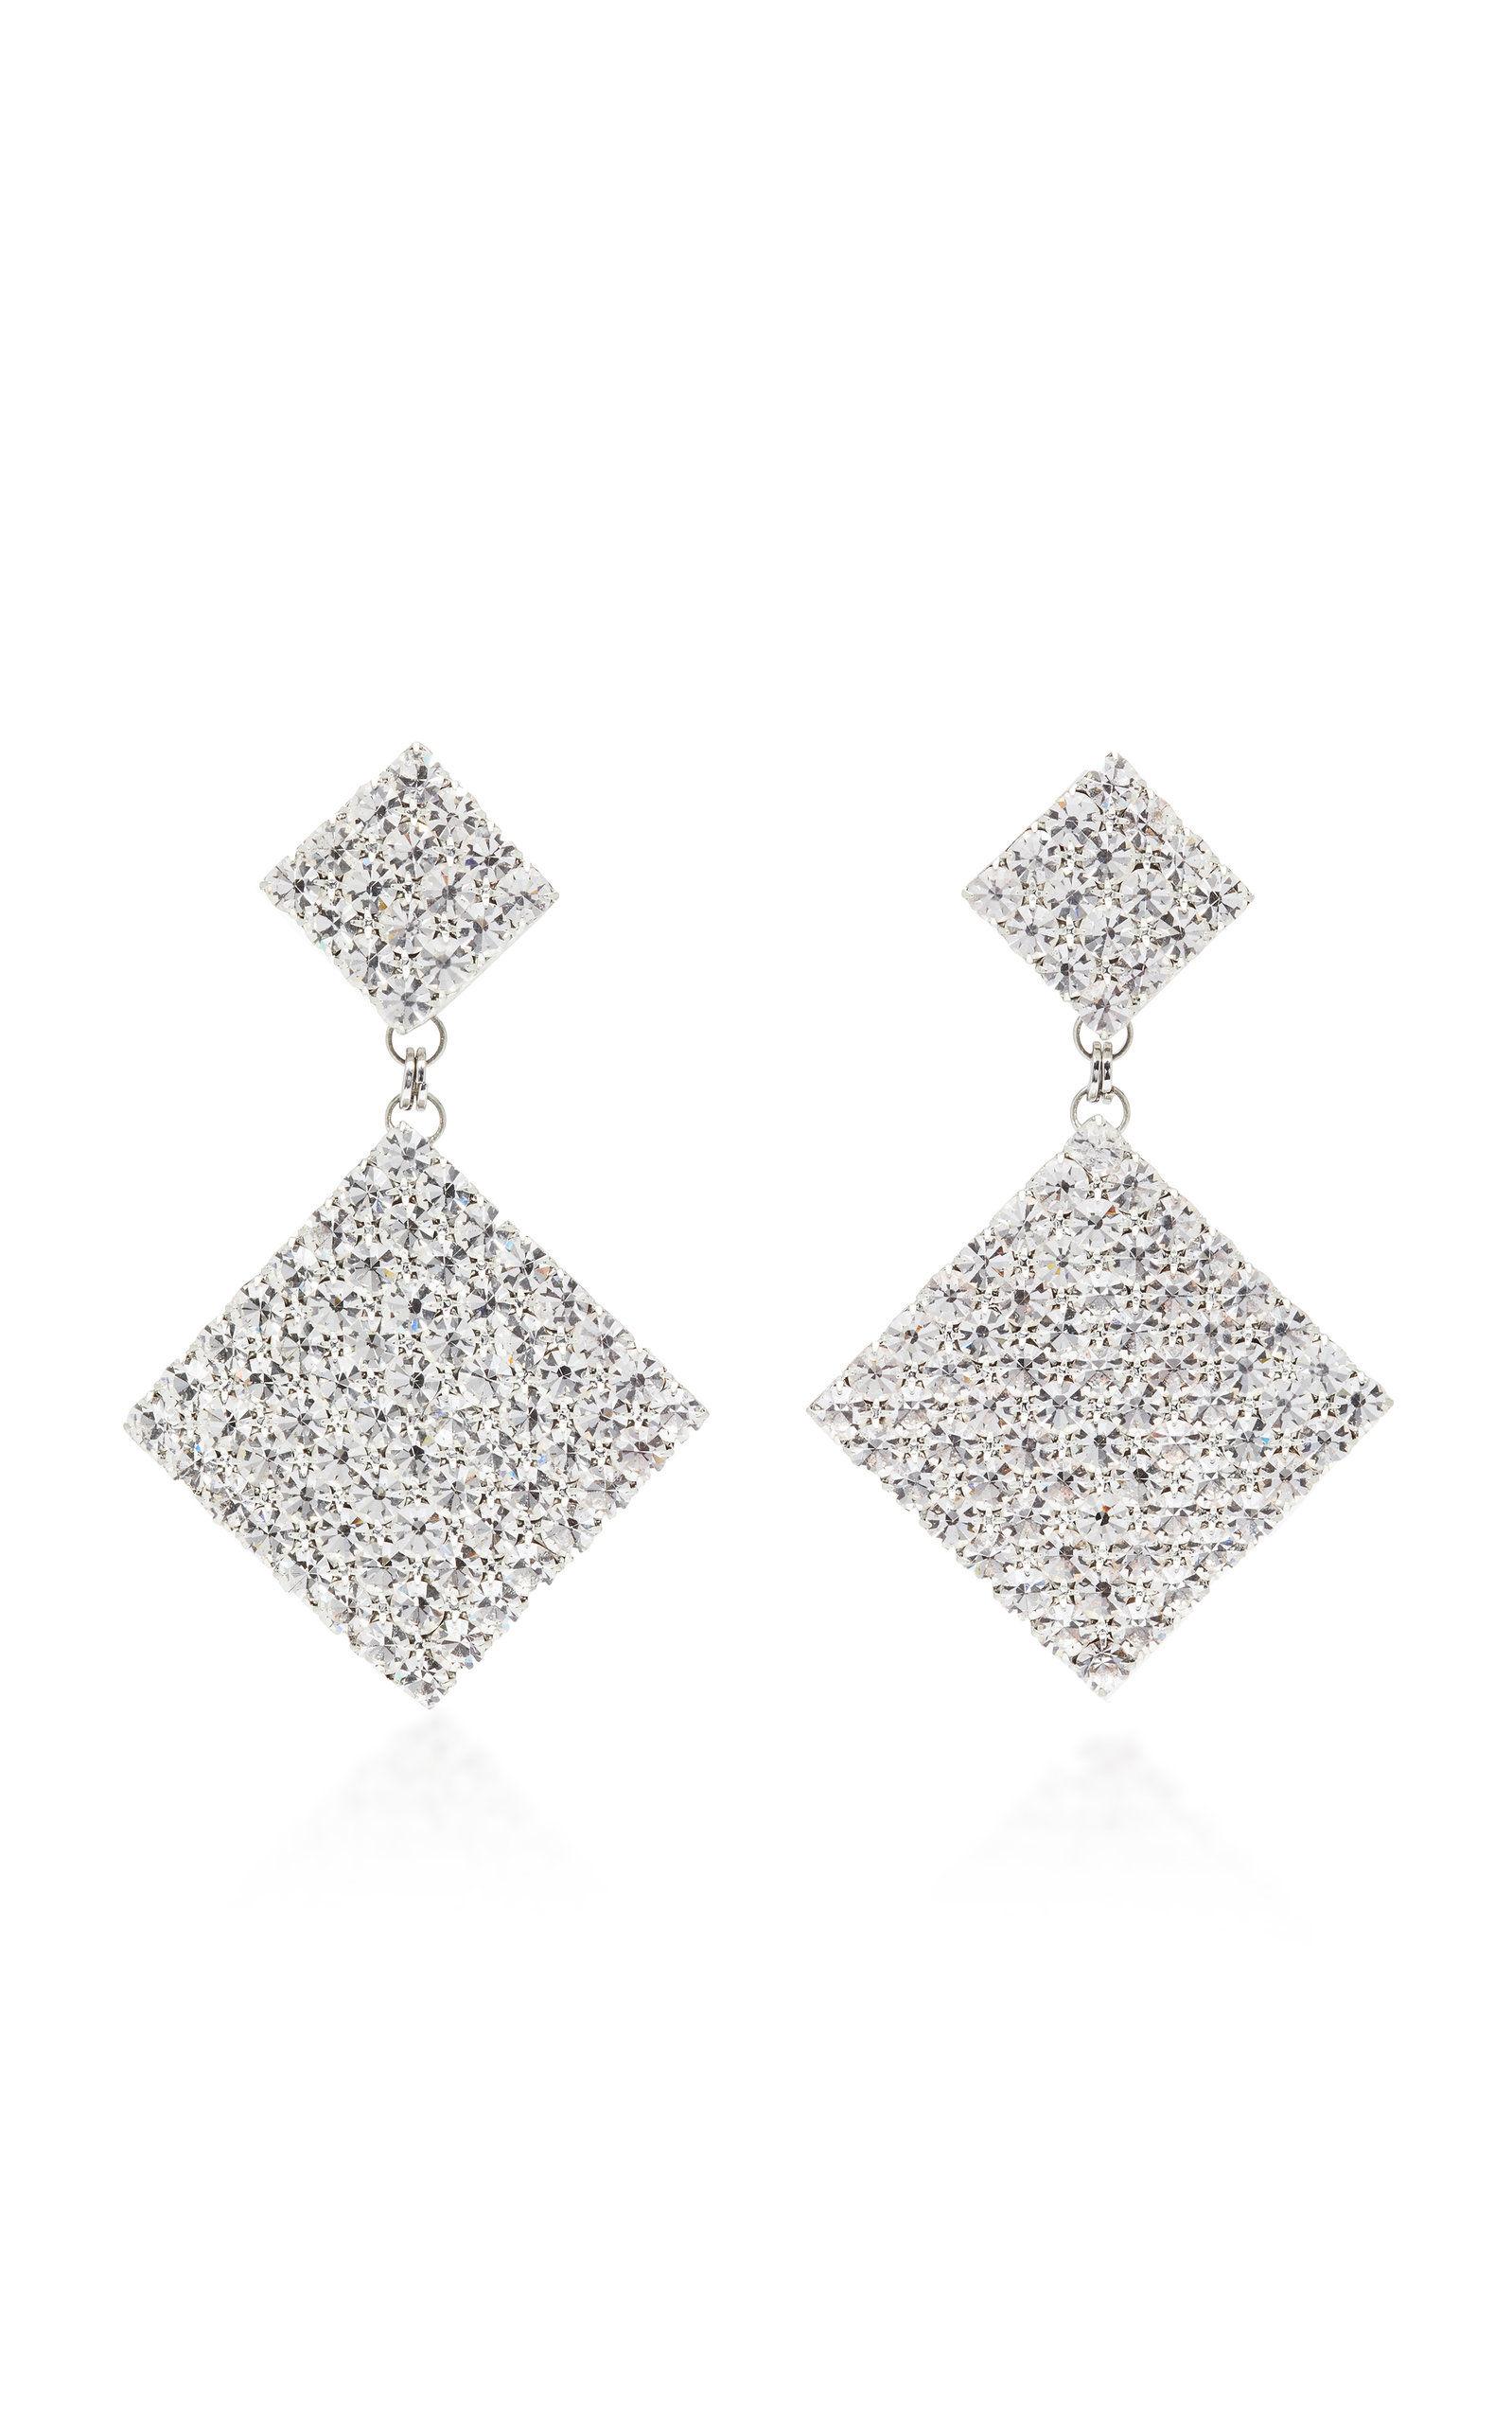 large_alessandra-rich-white-double-diamond-crystal-earrings.jpg